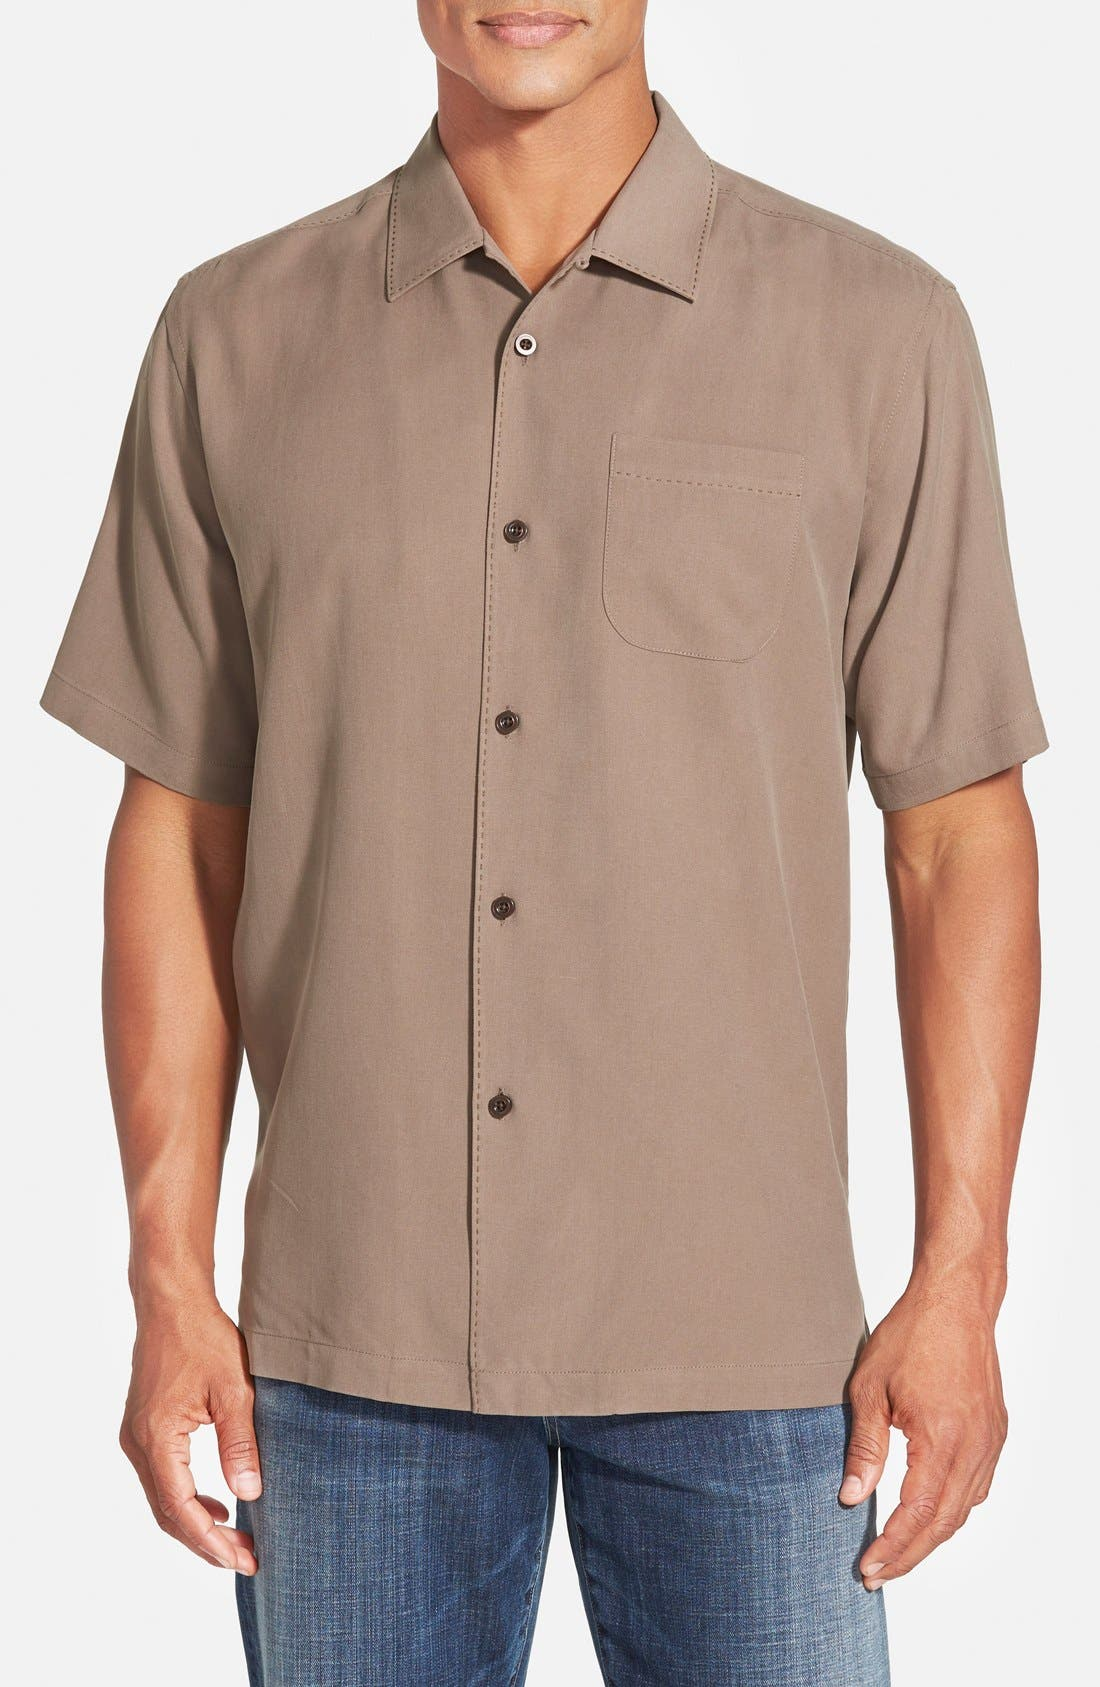 Alternate Image 1 Selected - Tommy Bahama 'Catalina Twill' Original Fit Silk Camp Shirt